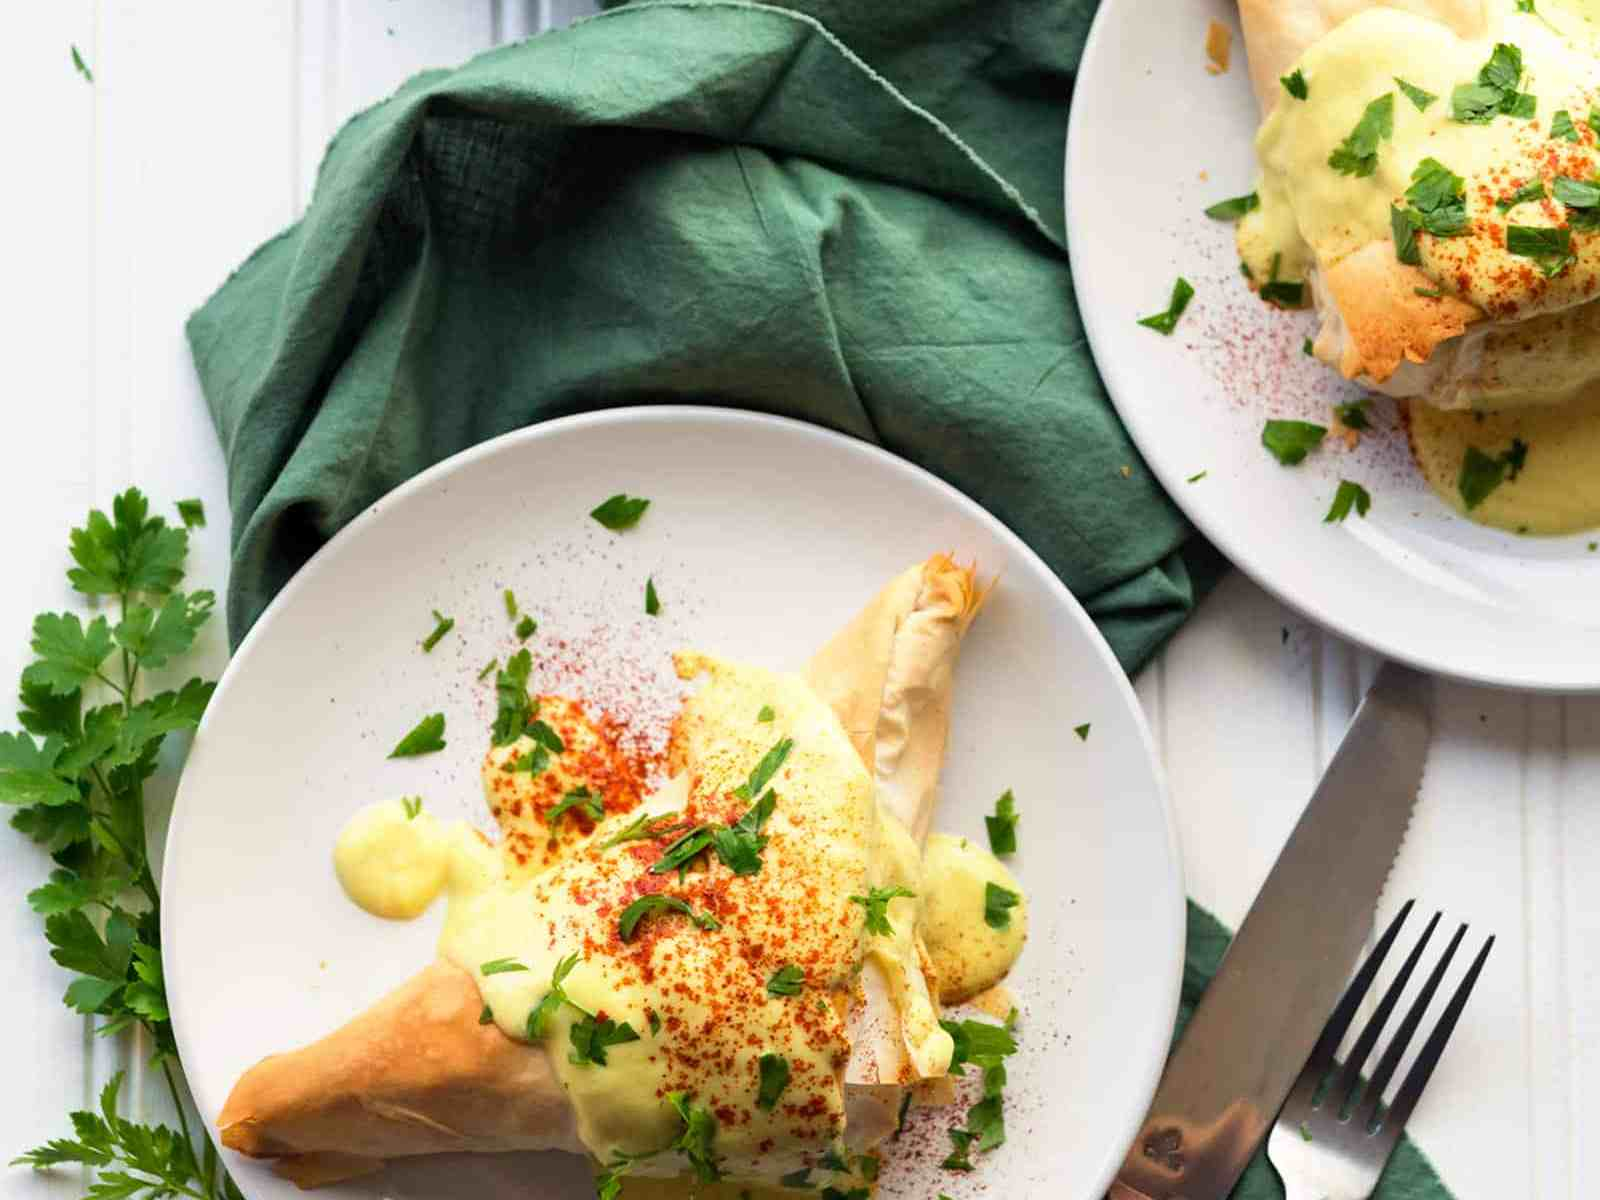 Need a fun brunch recipe? These Tofu Benedict Fillo Pockets are equal parts fancy and delicious! With an easy #vegan Hollandaise sauce. #dairyfree #eggfree